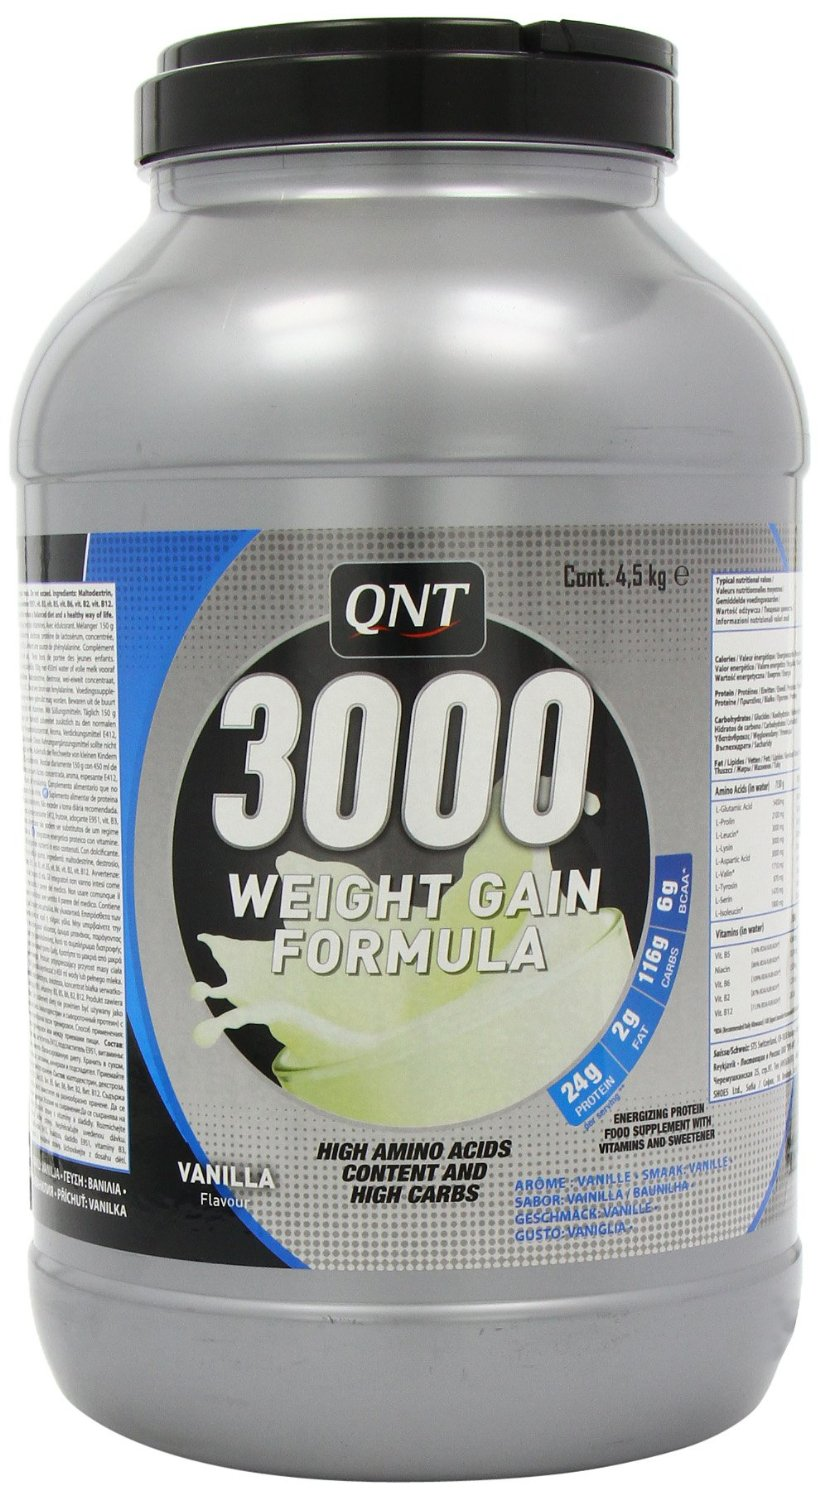 WEIGHT GAIN 3000 земляника 4500g (QNT)